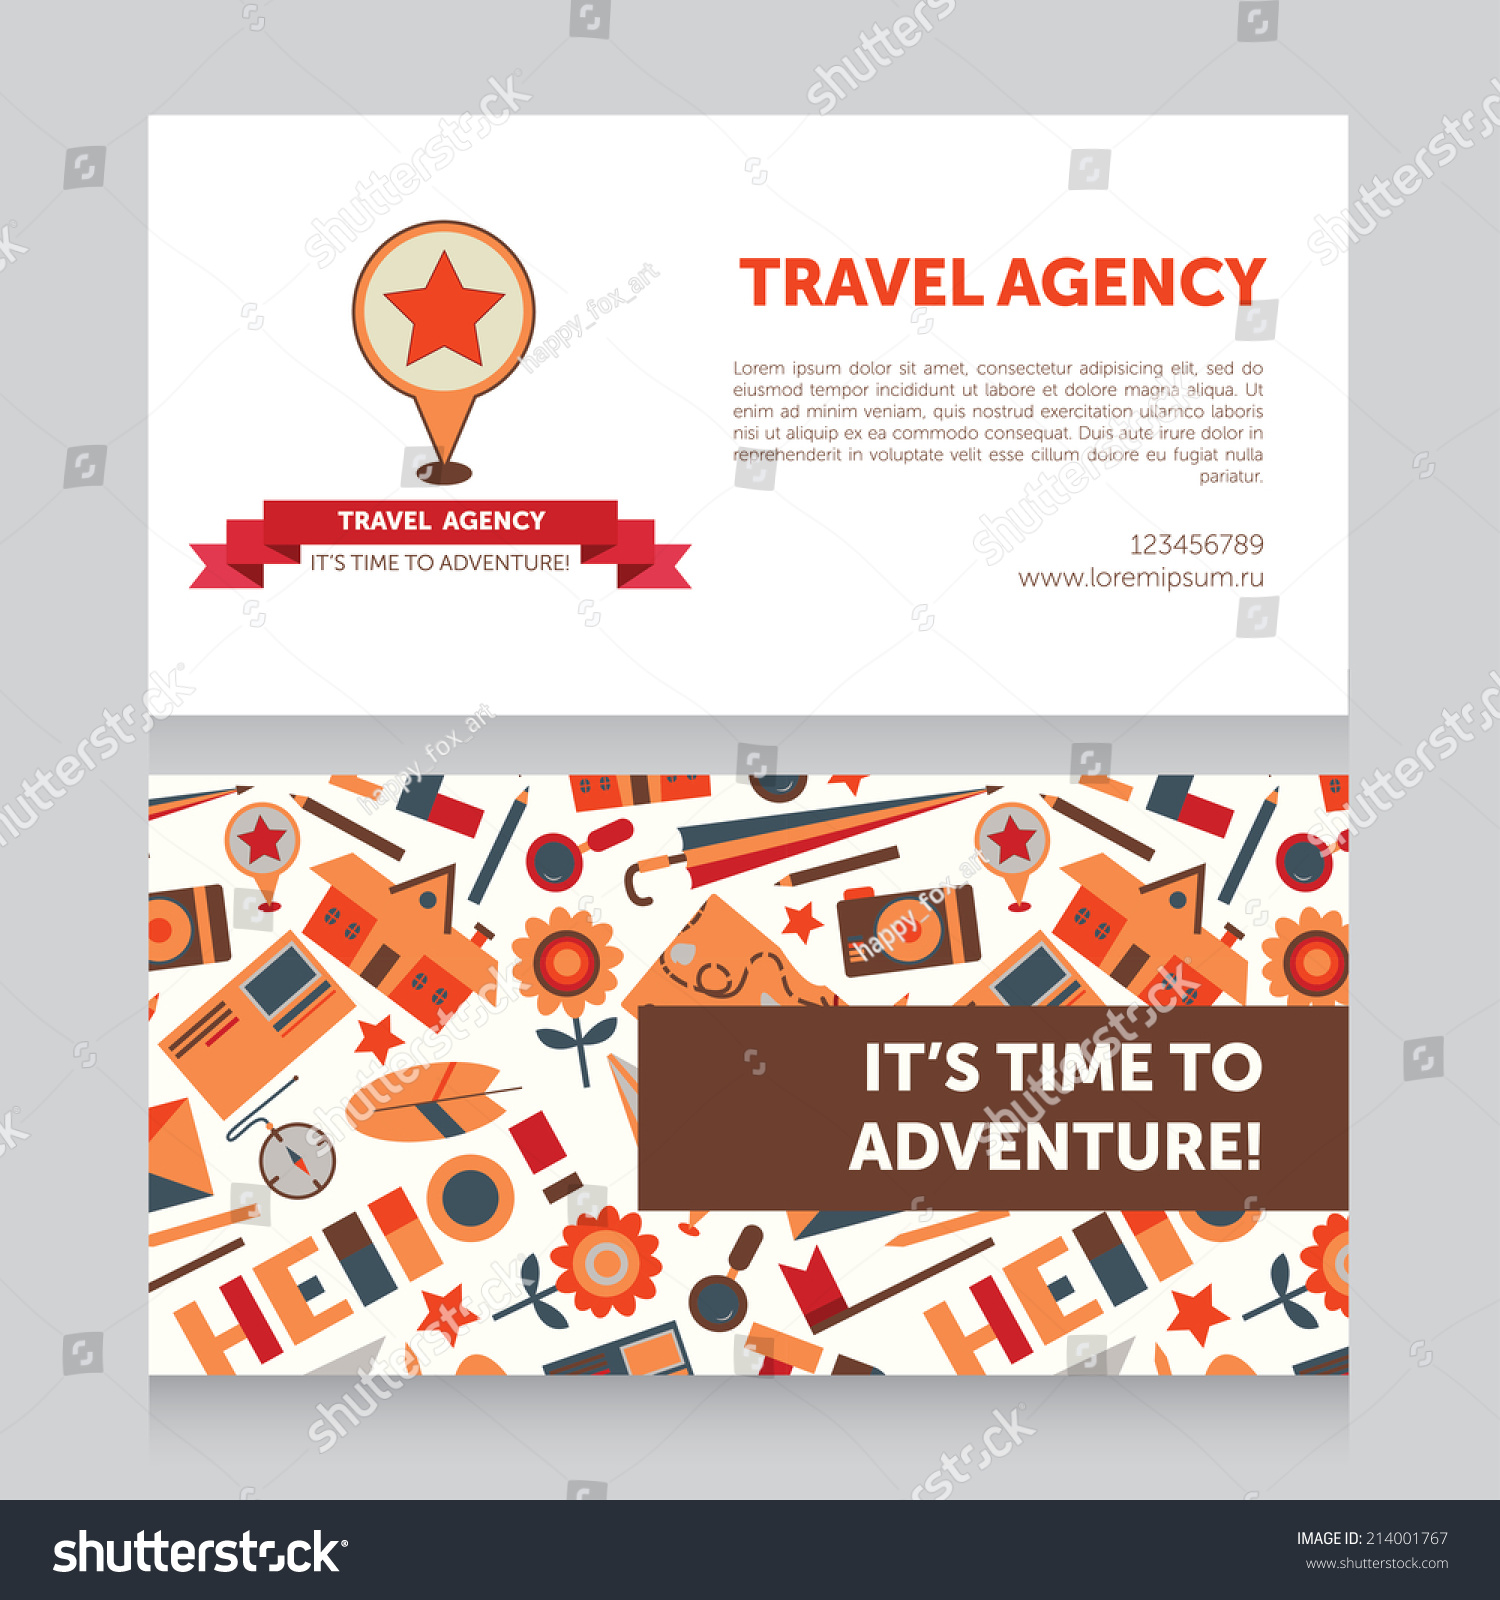 Design template travel agency business card stock vector 214001767 design template for travel agency business card vector illustration magicingreecefo Image collections